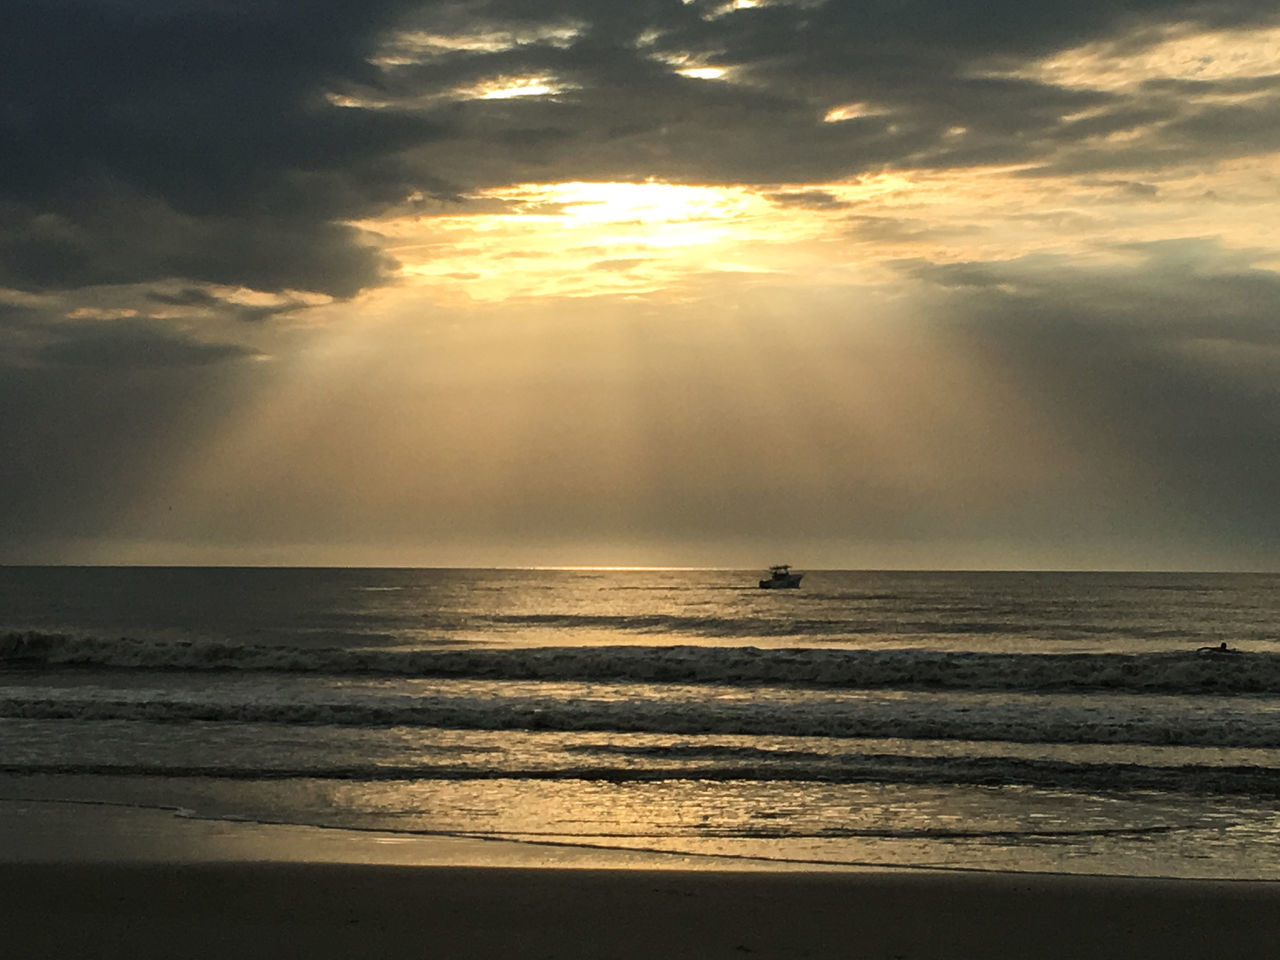 Heaven's rays over ocean Beach Beauty In Nature Cloud - Sky Day Horizon Over Water Idyllic Nature No People Outdoors Reflection Scenics Sea Silhouette Sky Sunlight Sunset Tranquil Scene Tranquility Water Wave